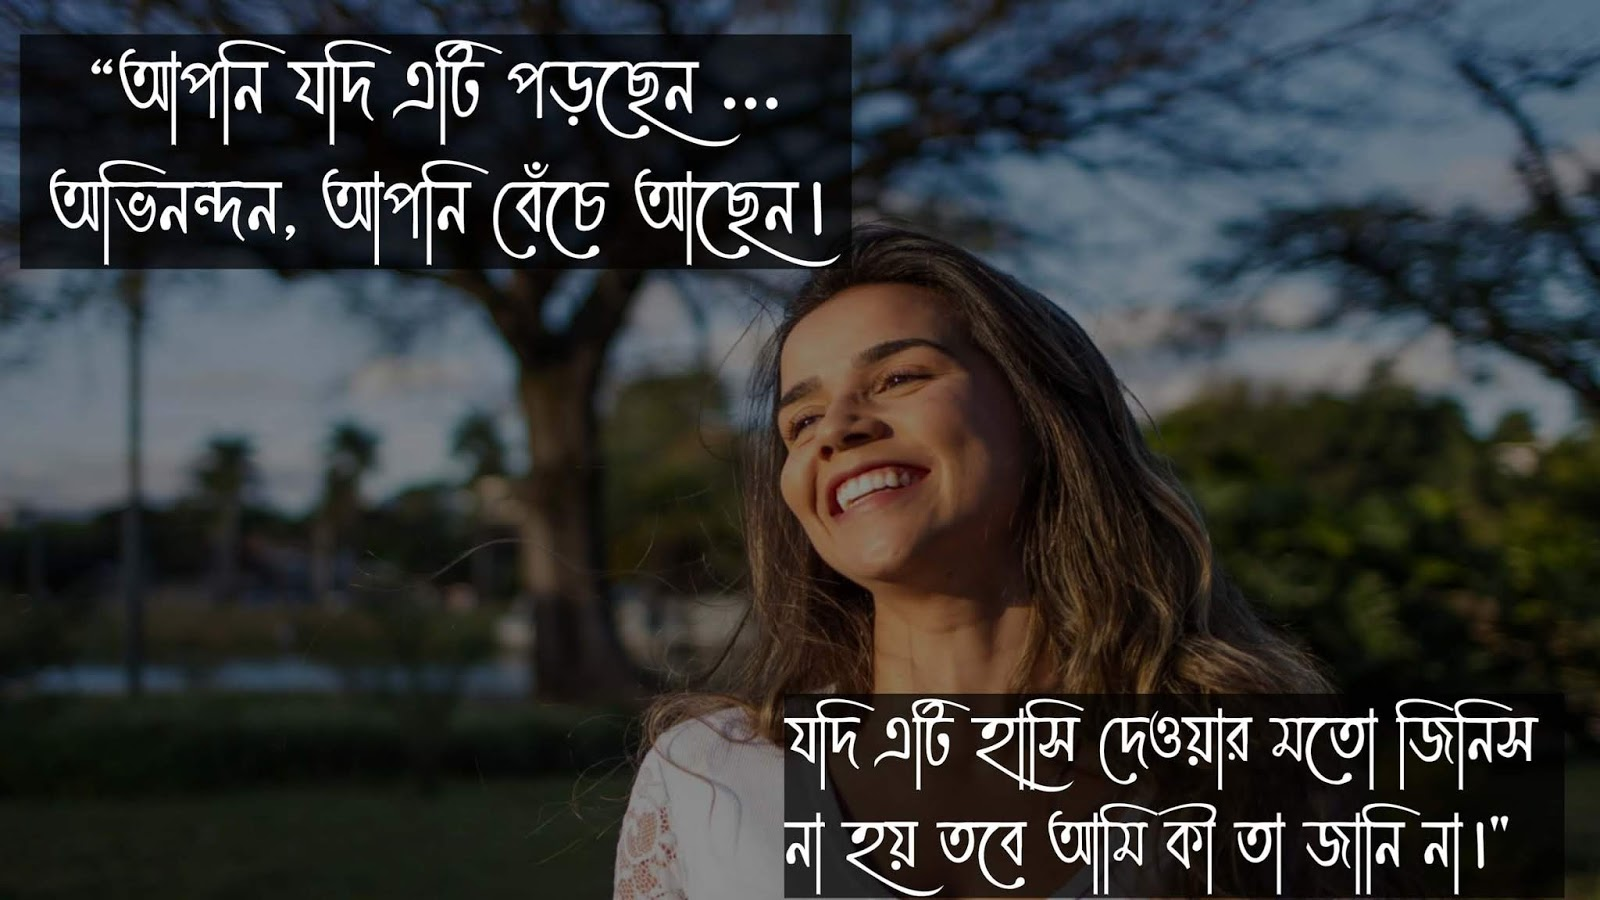 Bengali quotes on smile